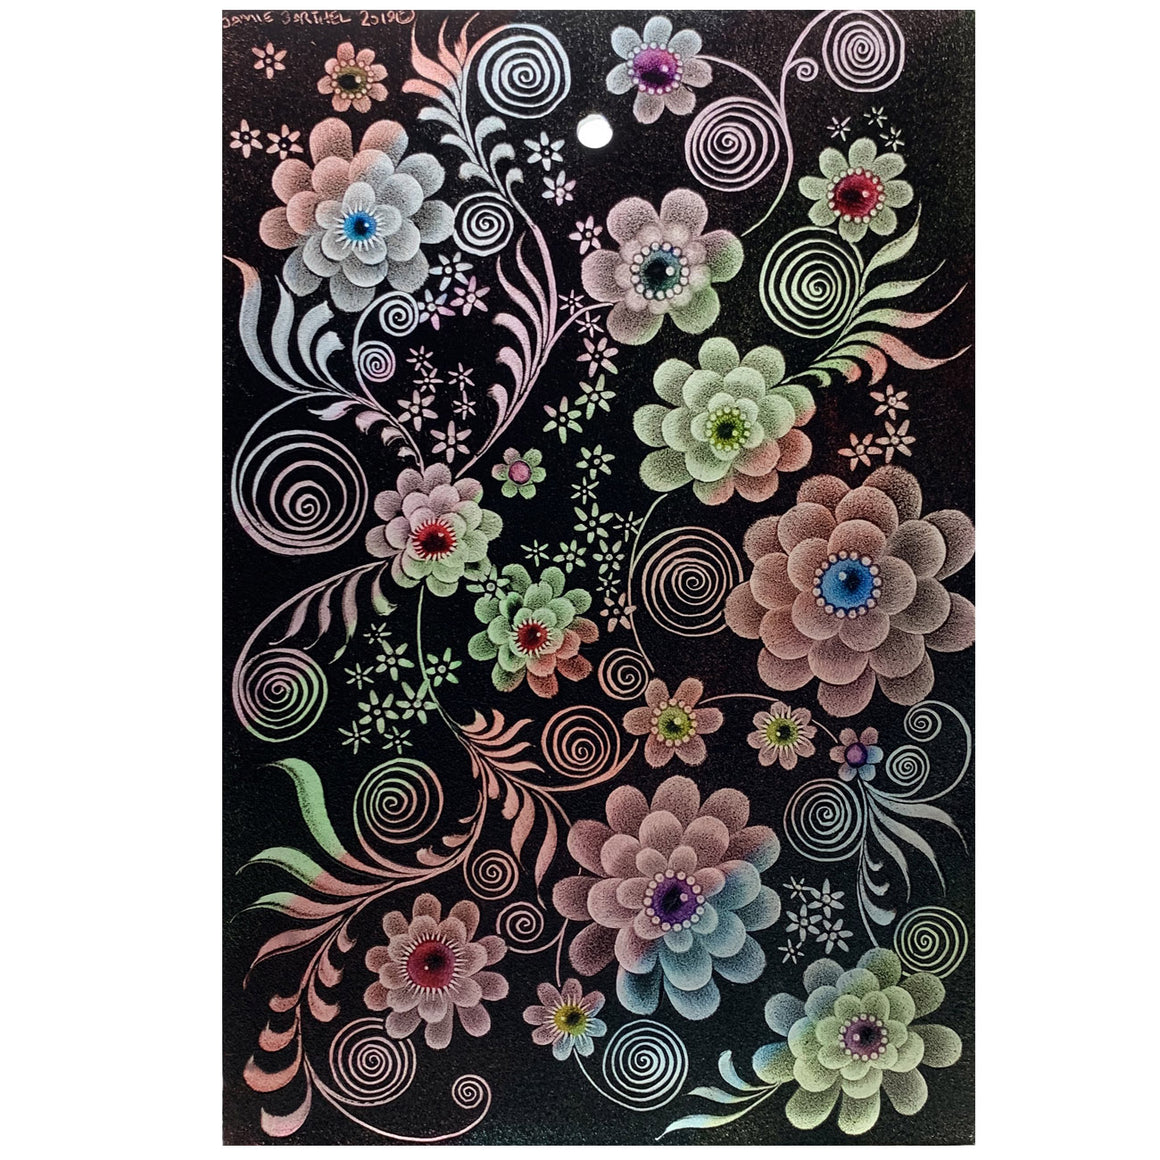 "Black Floral 9"" x 6"" Window Hanging"